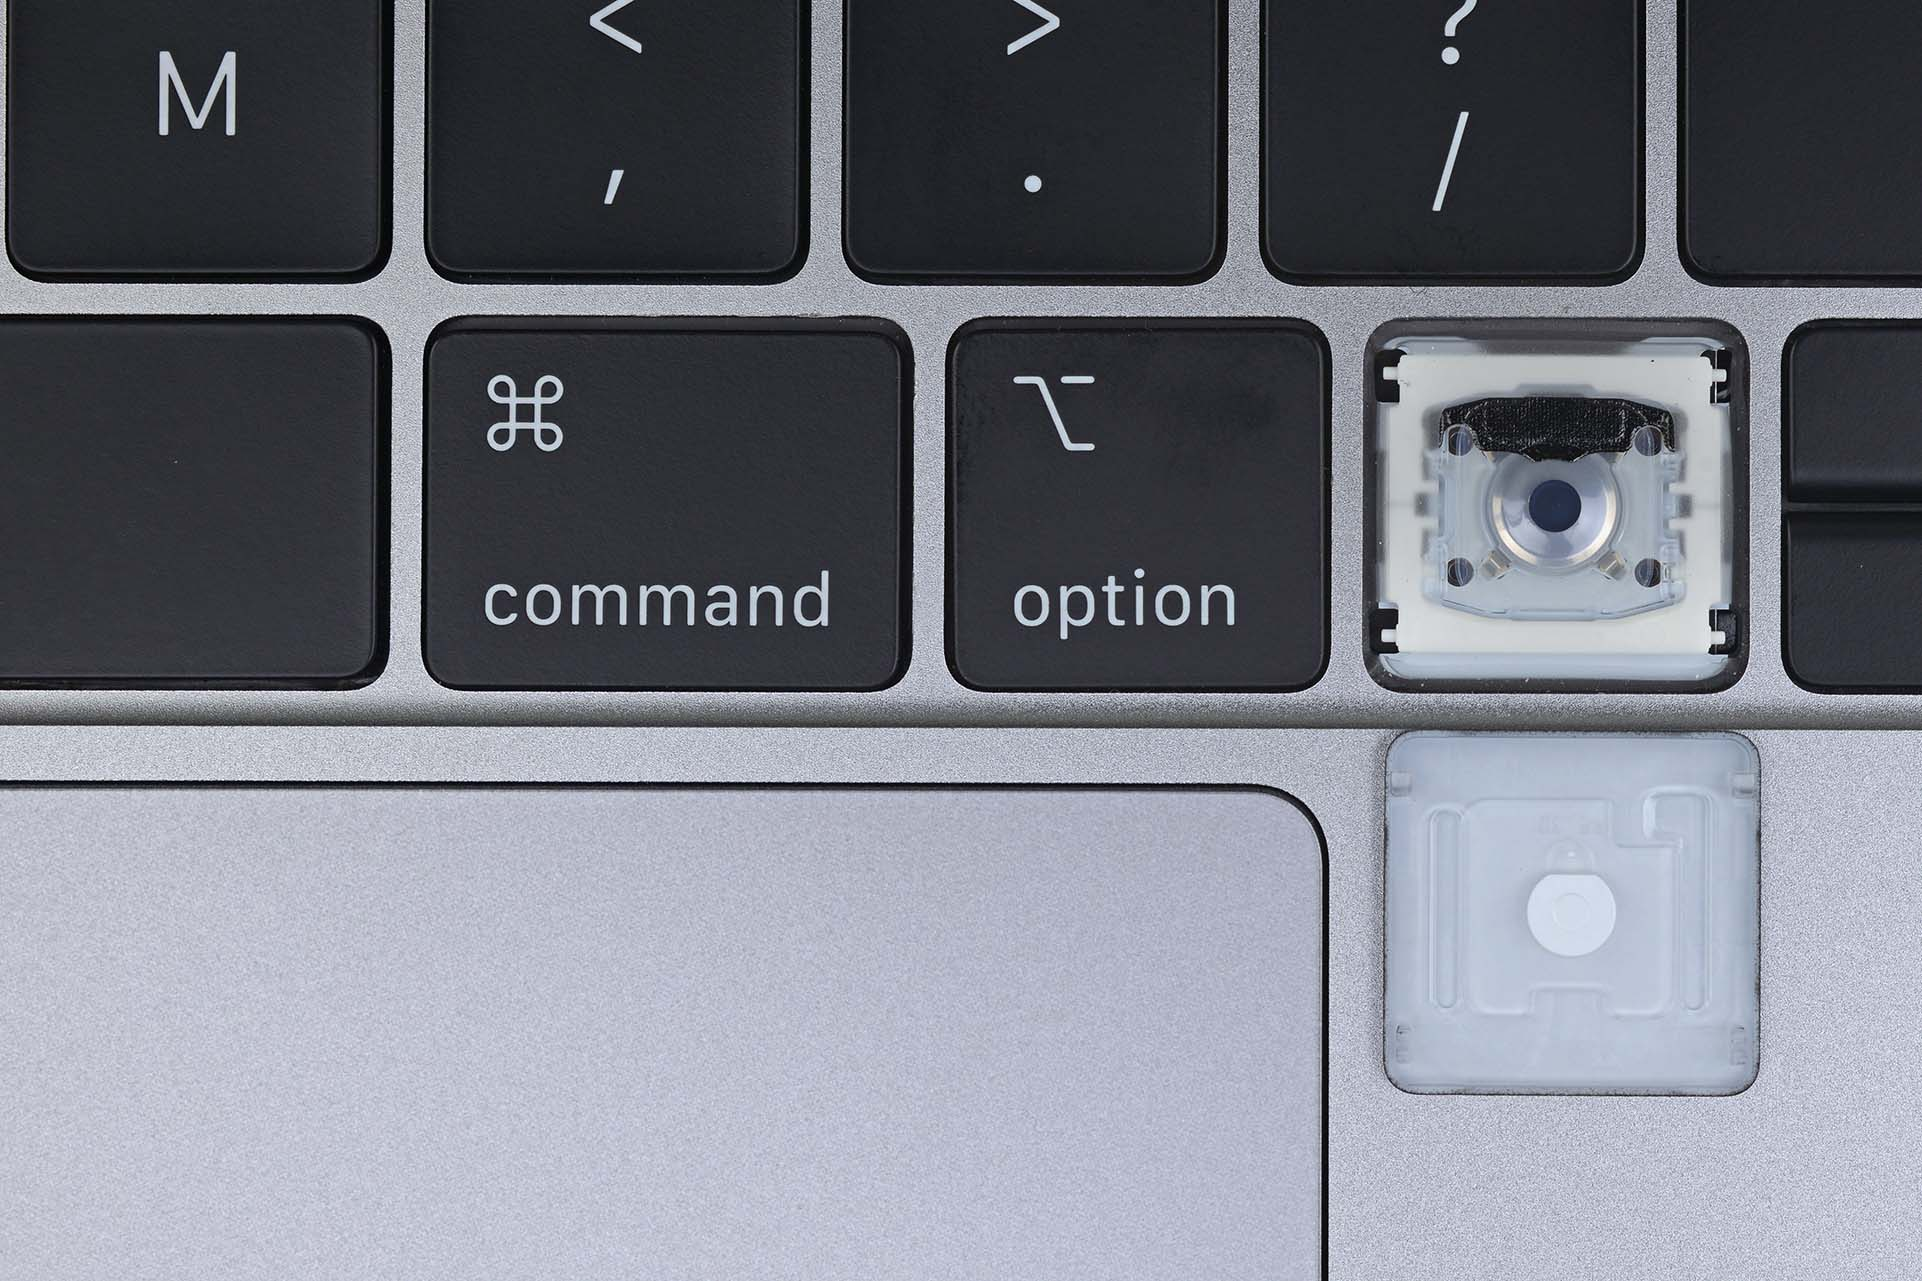 The butterfly keyboard switch in the 2019 MacBook Pro